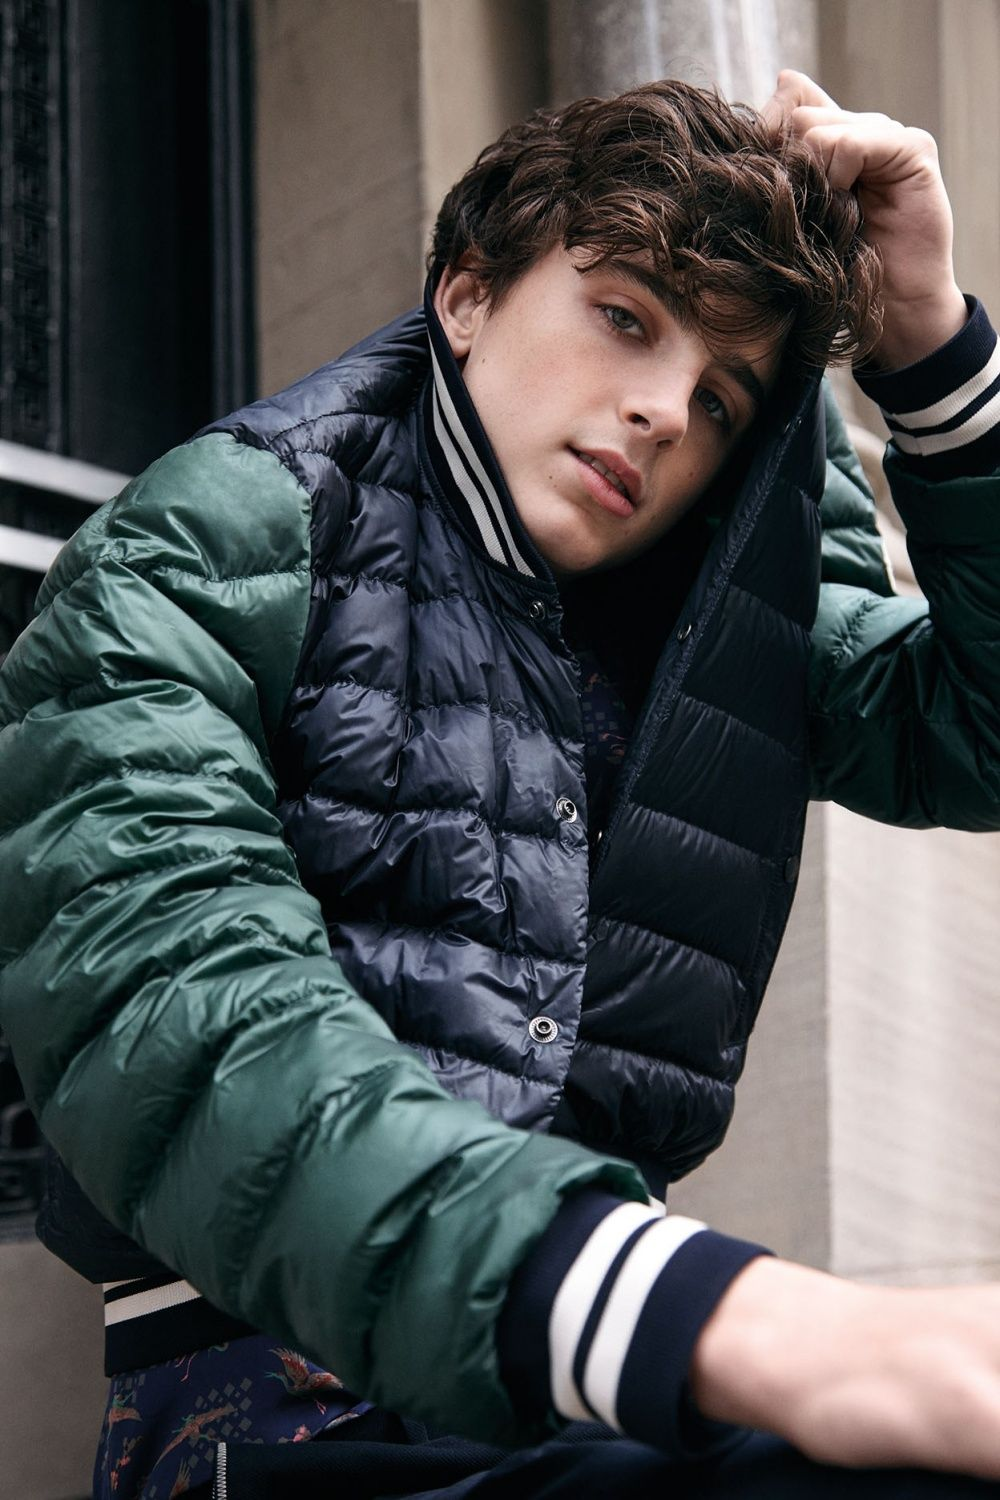 Timothee Chalamet photo 3 of 56 pics, wallpaper - photo #974696 ...